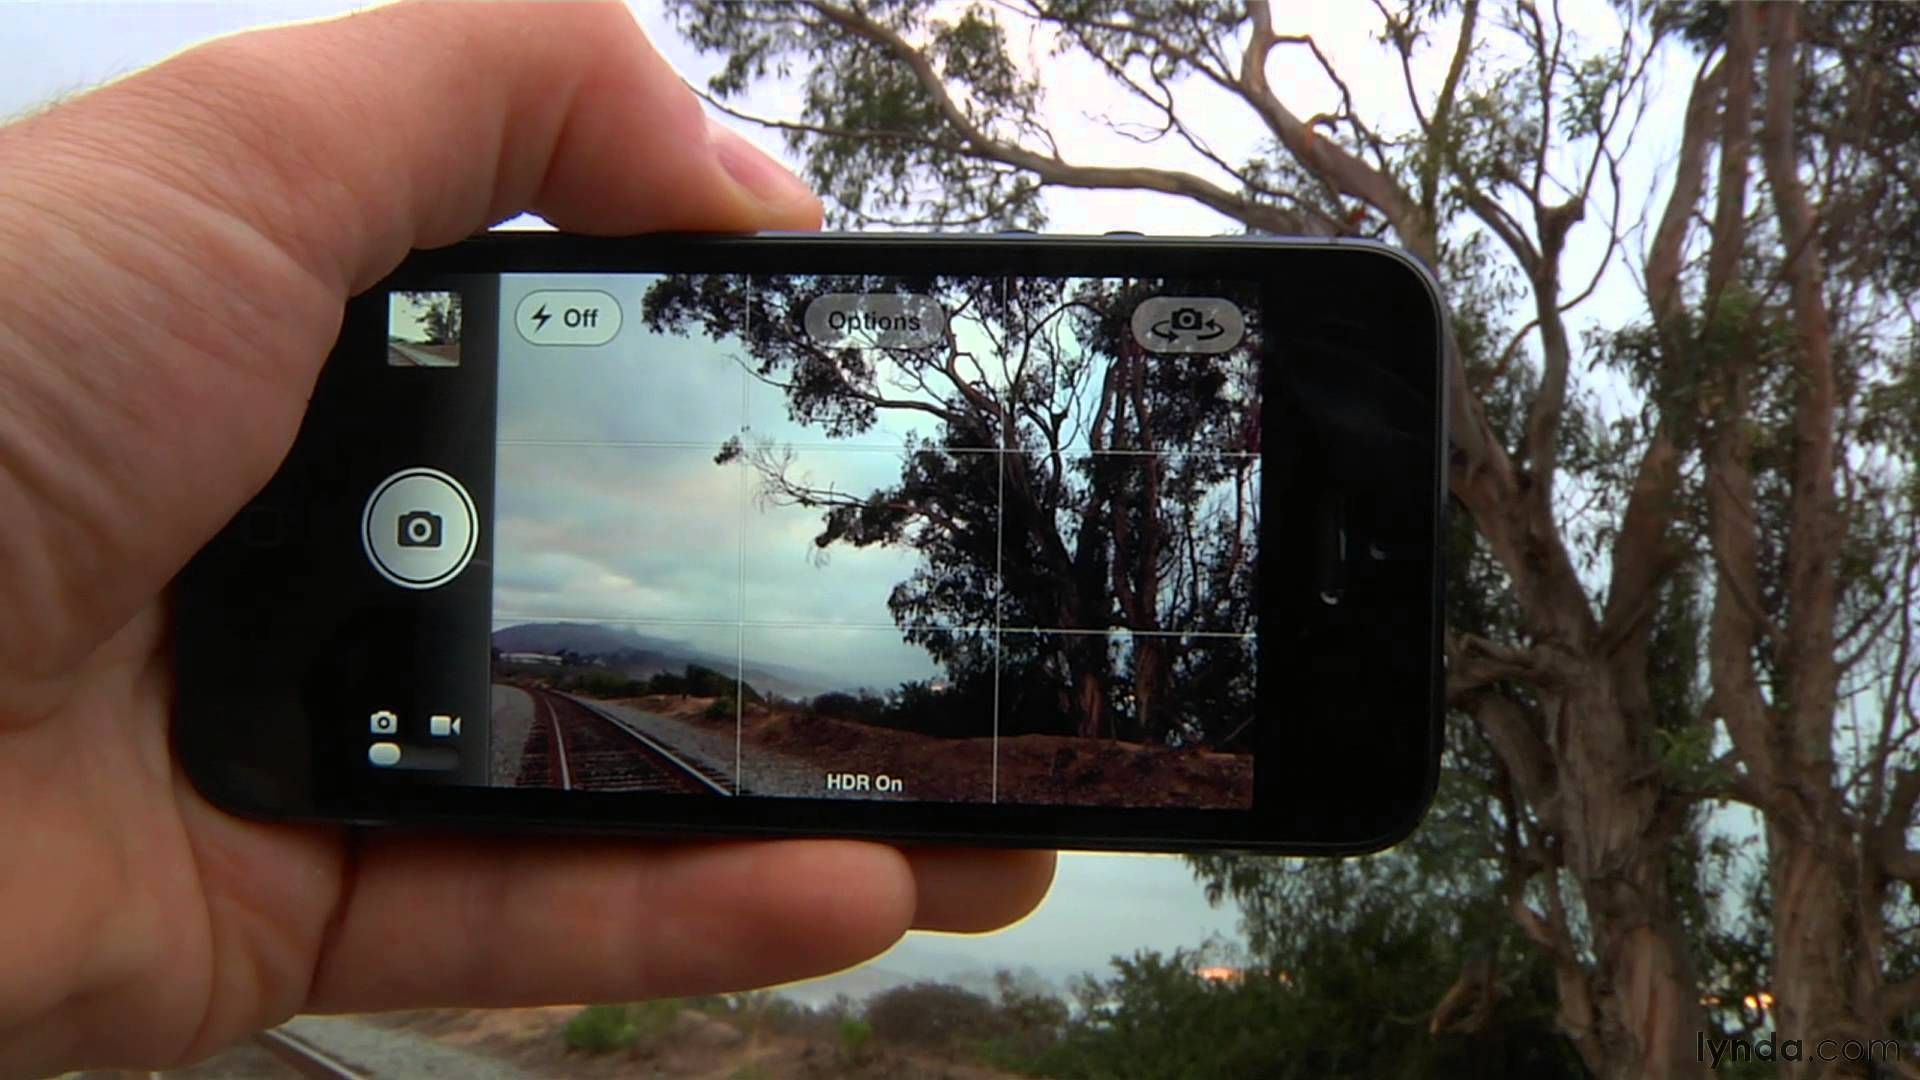 Phone Photography 101 How To Take Good Pictures With Your Mobile Device Smartphone Photography Tricks Smartphone Photography Phone Photography